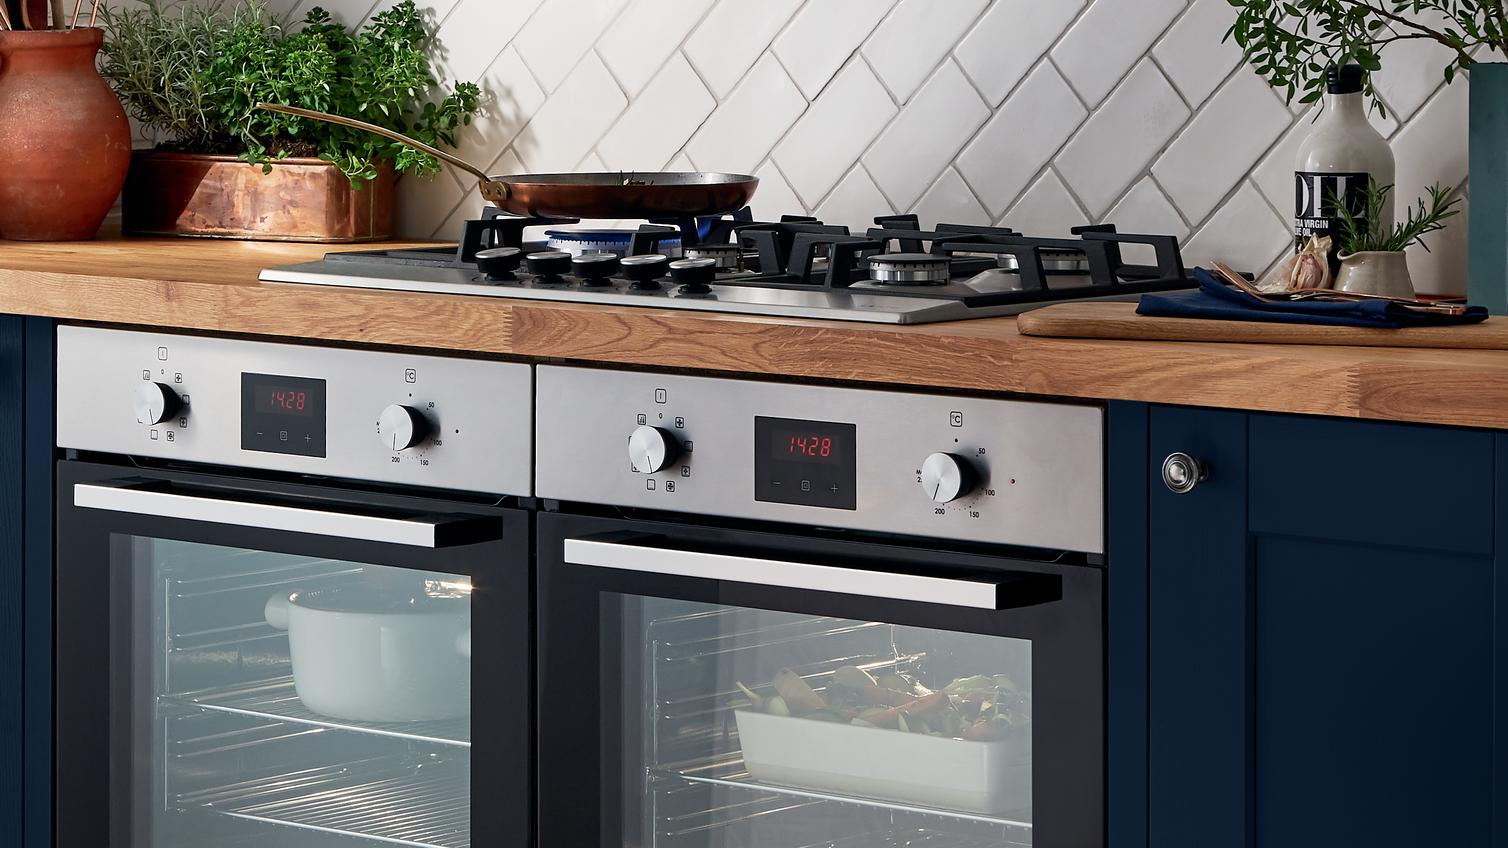 Kitchen Appliances | Cooking Appliances & Equipment | Howdens Joinery